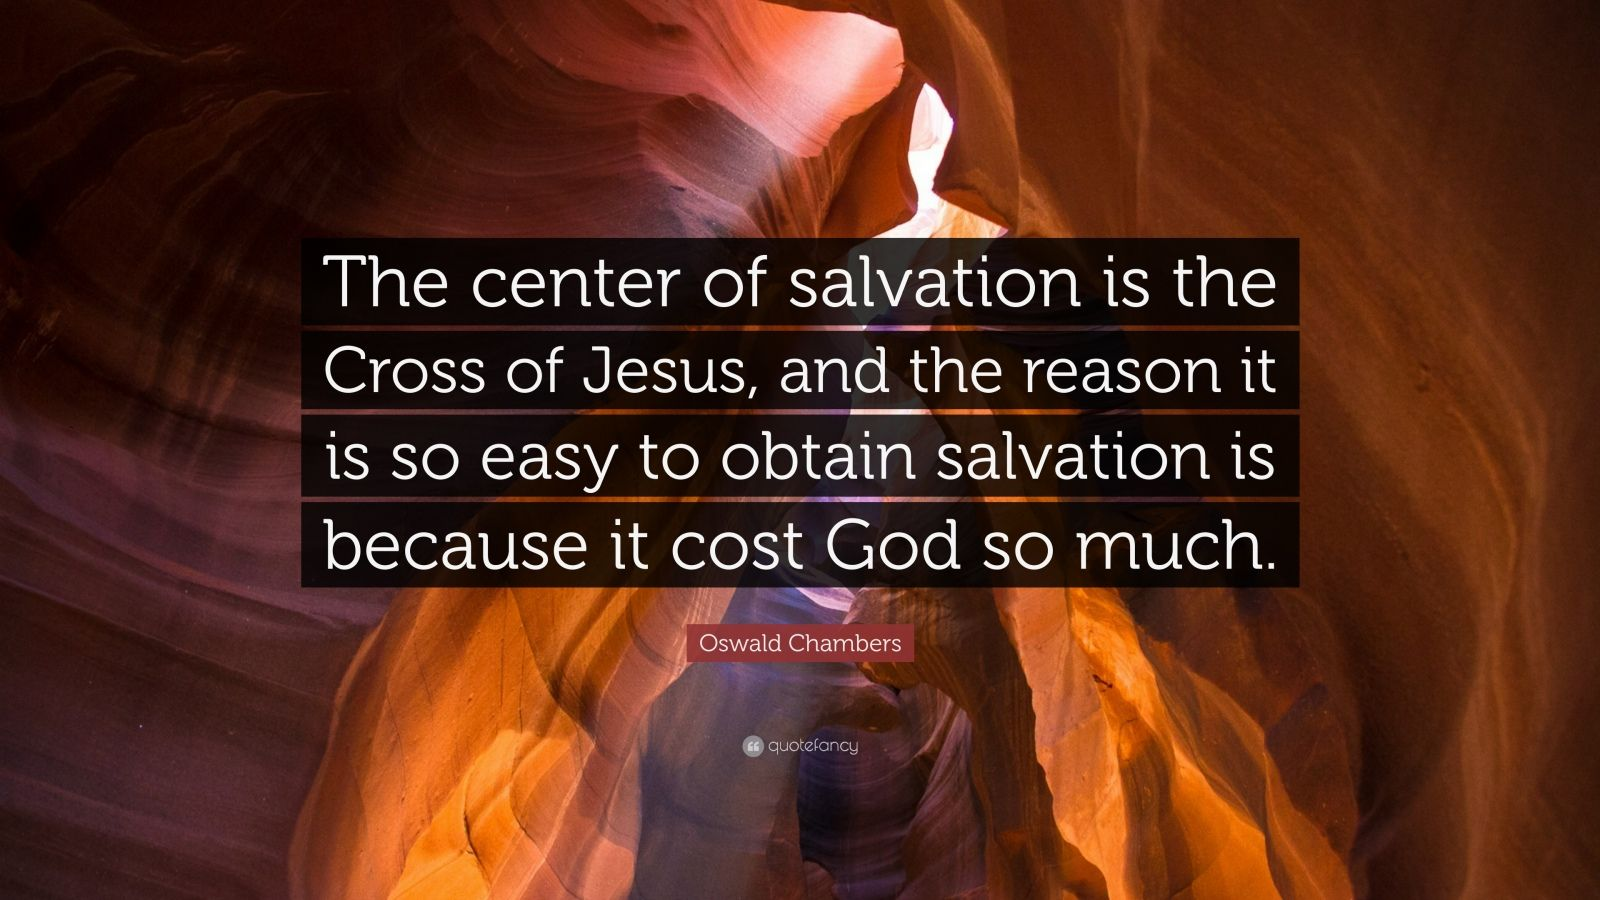 """Oswald Chambers Quote: """"The center of salvation is the Cross of Jesus, and the reason it is so easy to obtain salvation is because it cost God so much."""""""